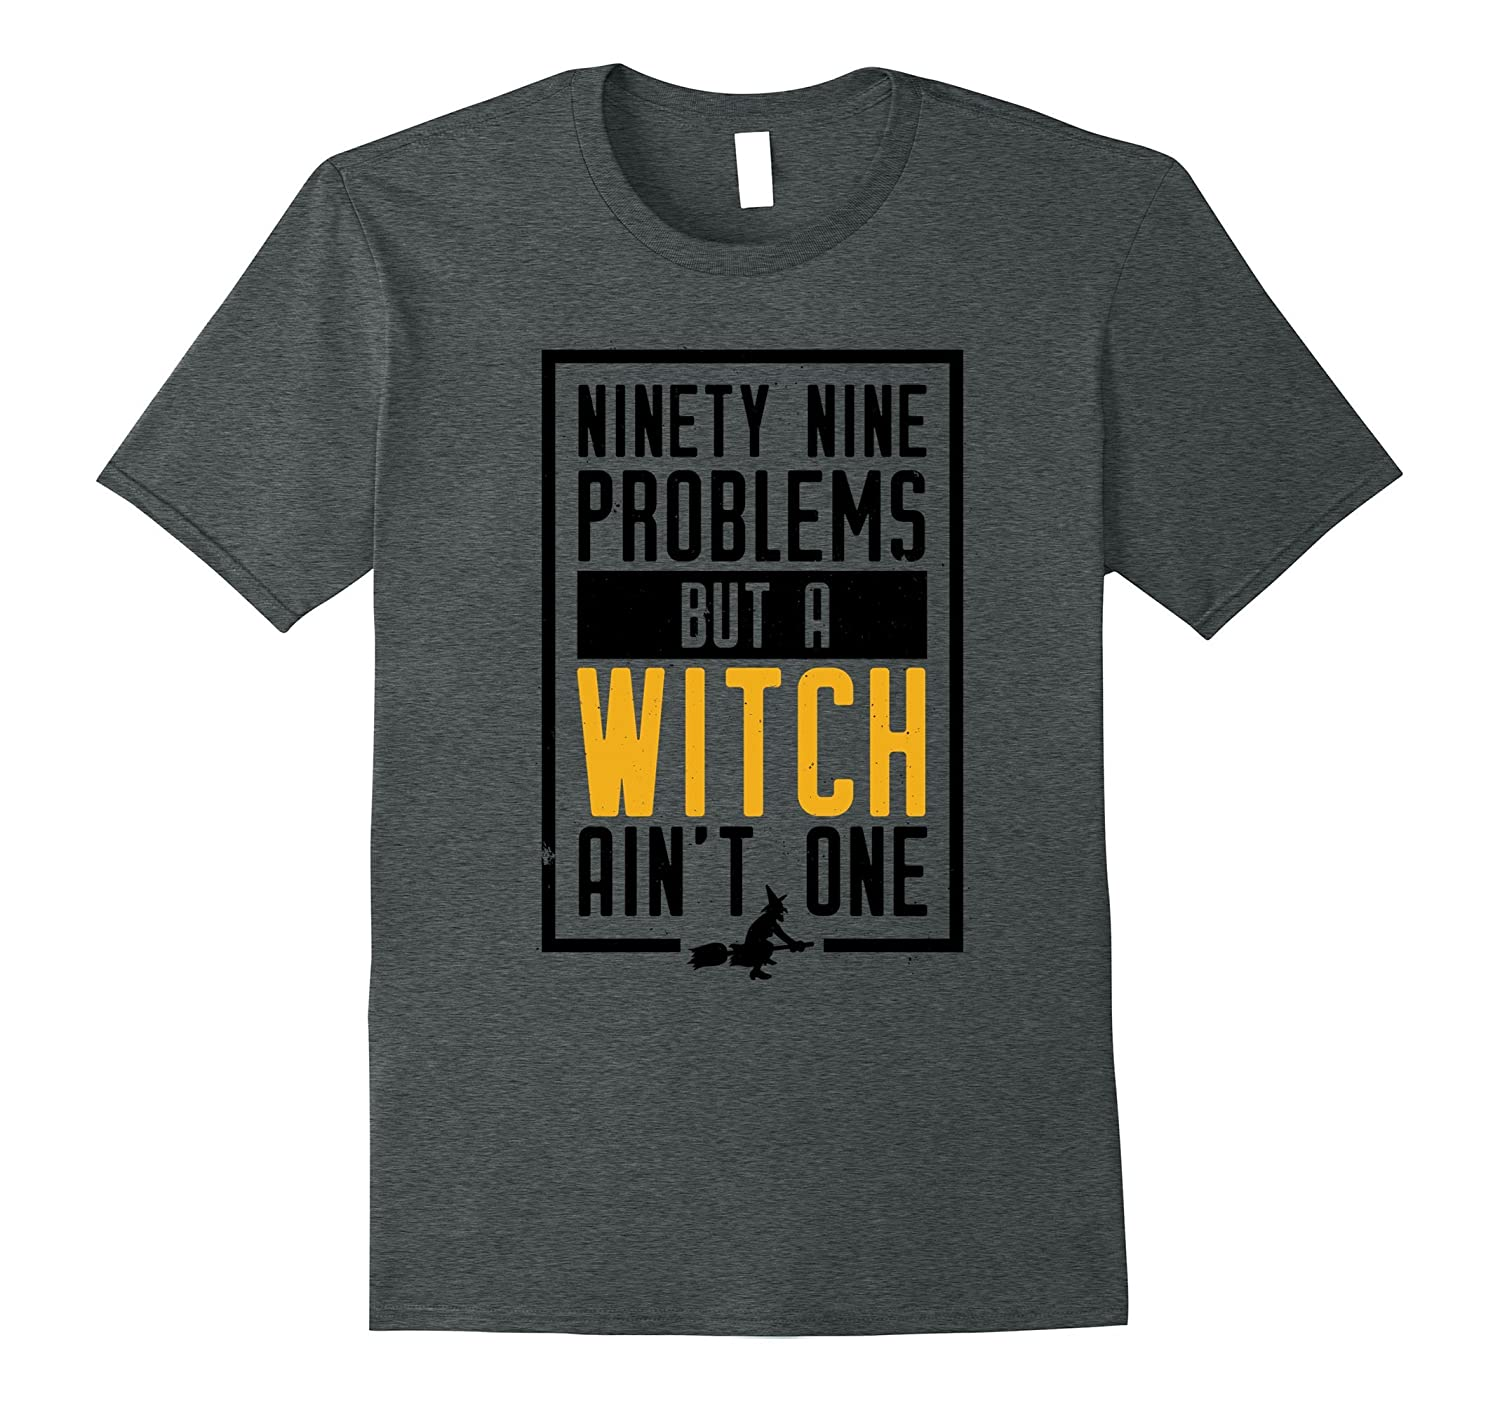 99 Problems But A Witch Ain't One Funny Halloween T-shirt-FL